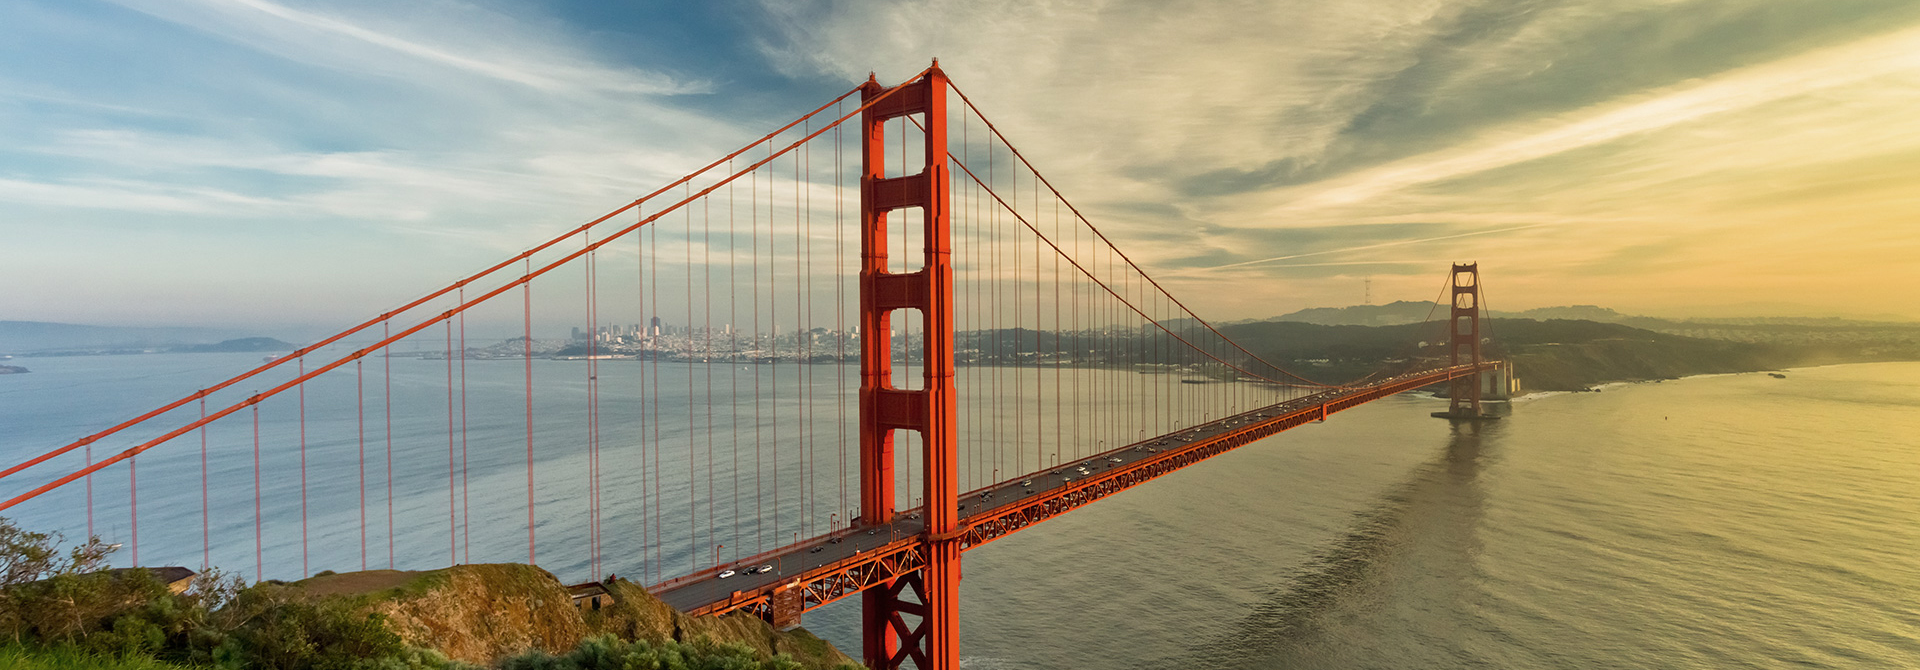 Golden gate Bridge von San Francisco